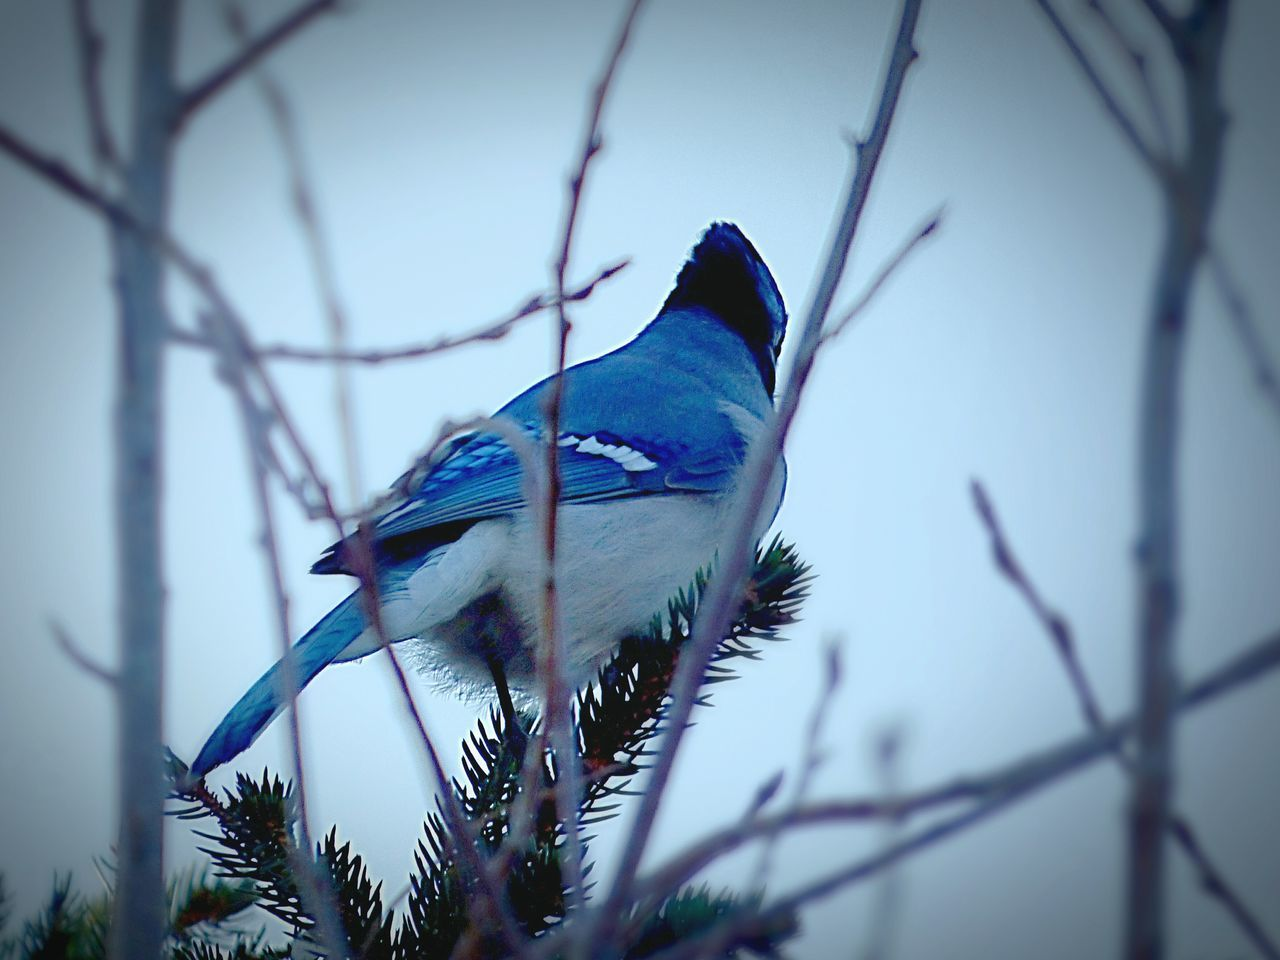 bird, one animal, animals in the wild, animal themes, perching, animal wildlife, bare tree, branch, nature, no people, day, beauty in nature, low angle view, blue, close-up, tree, outdoors, sky